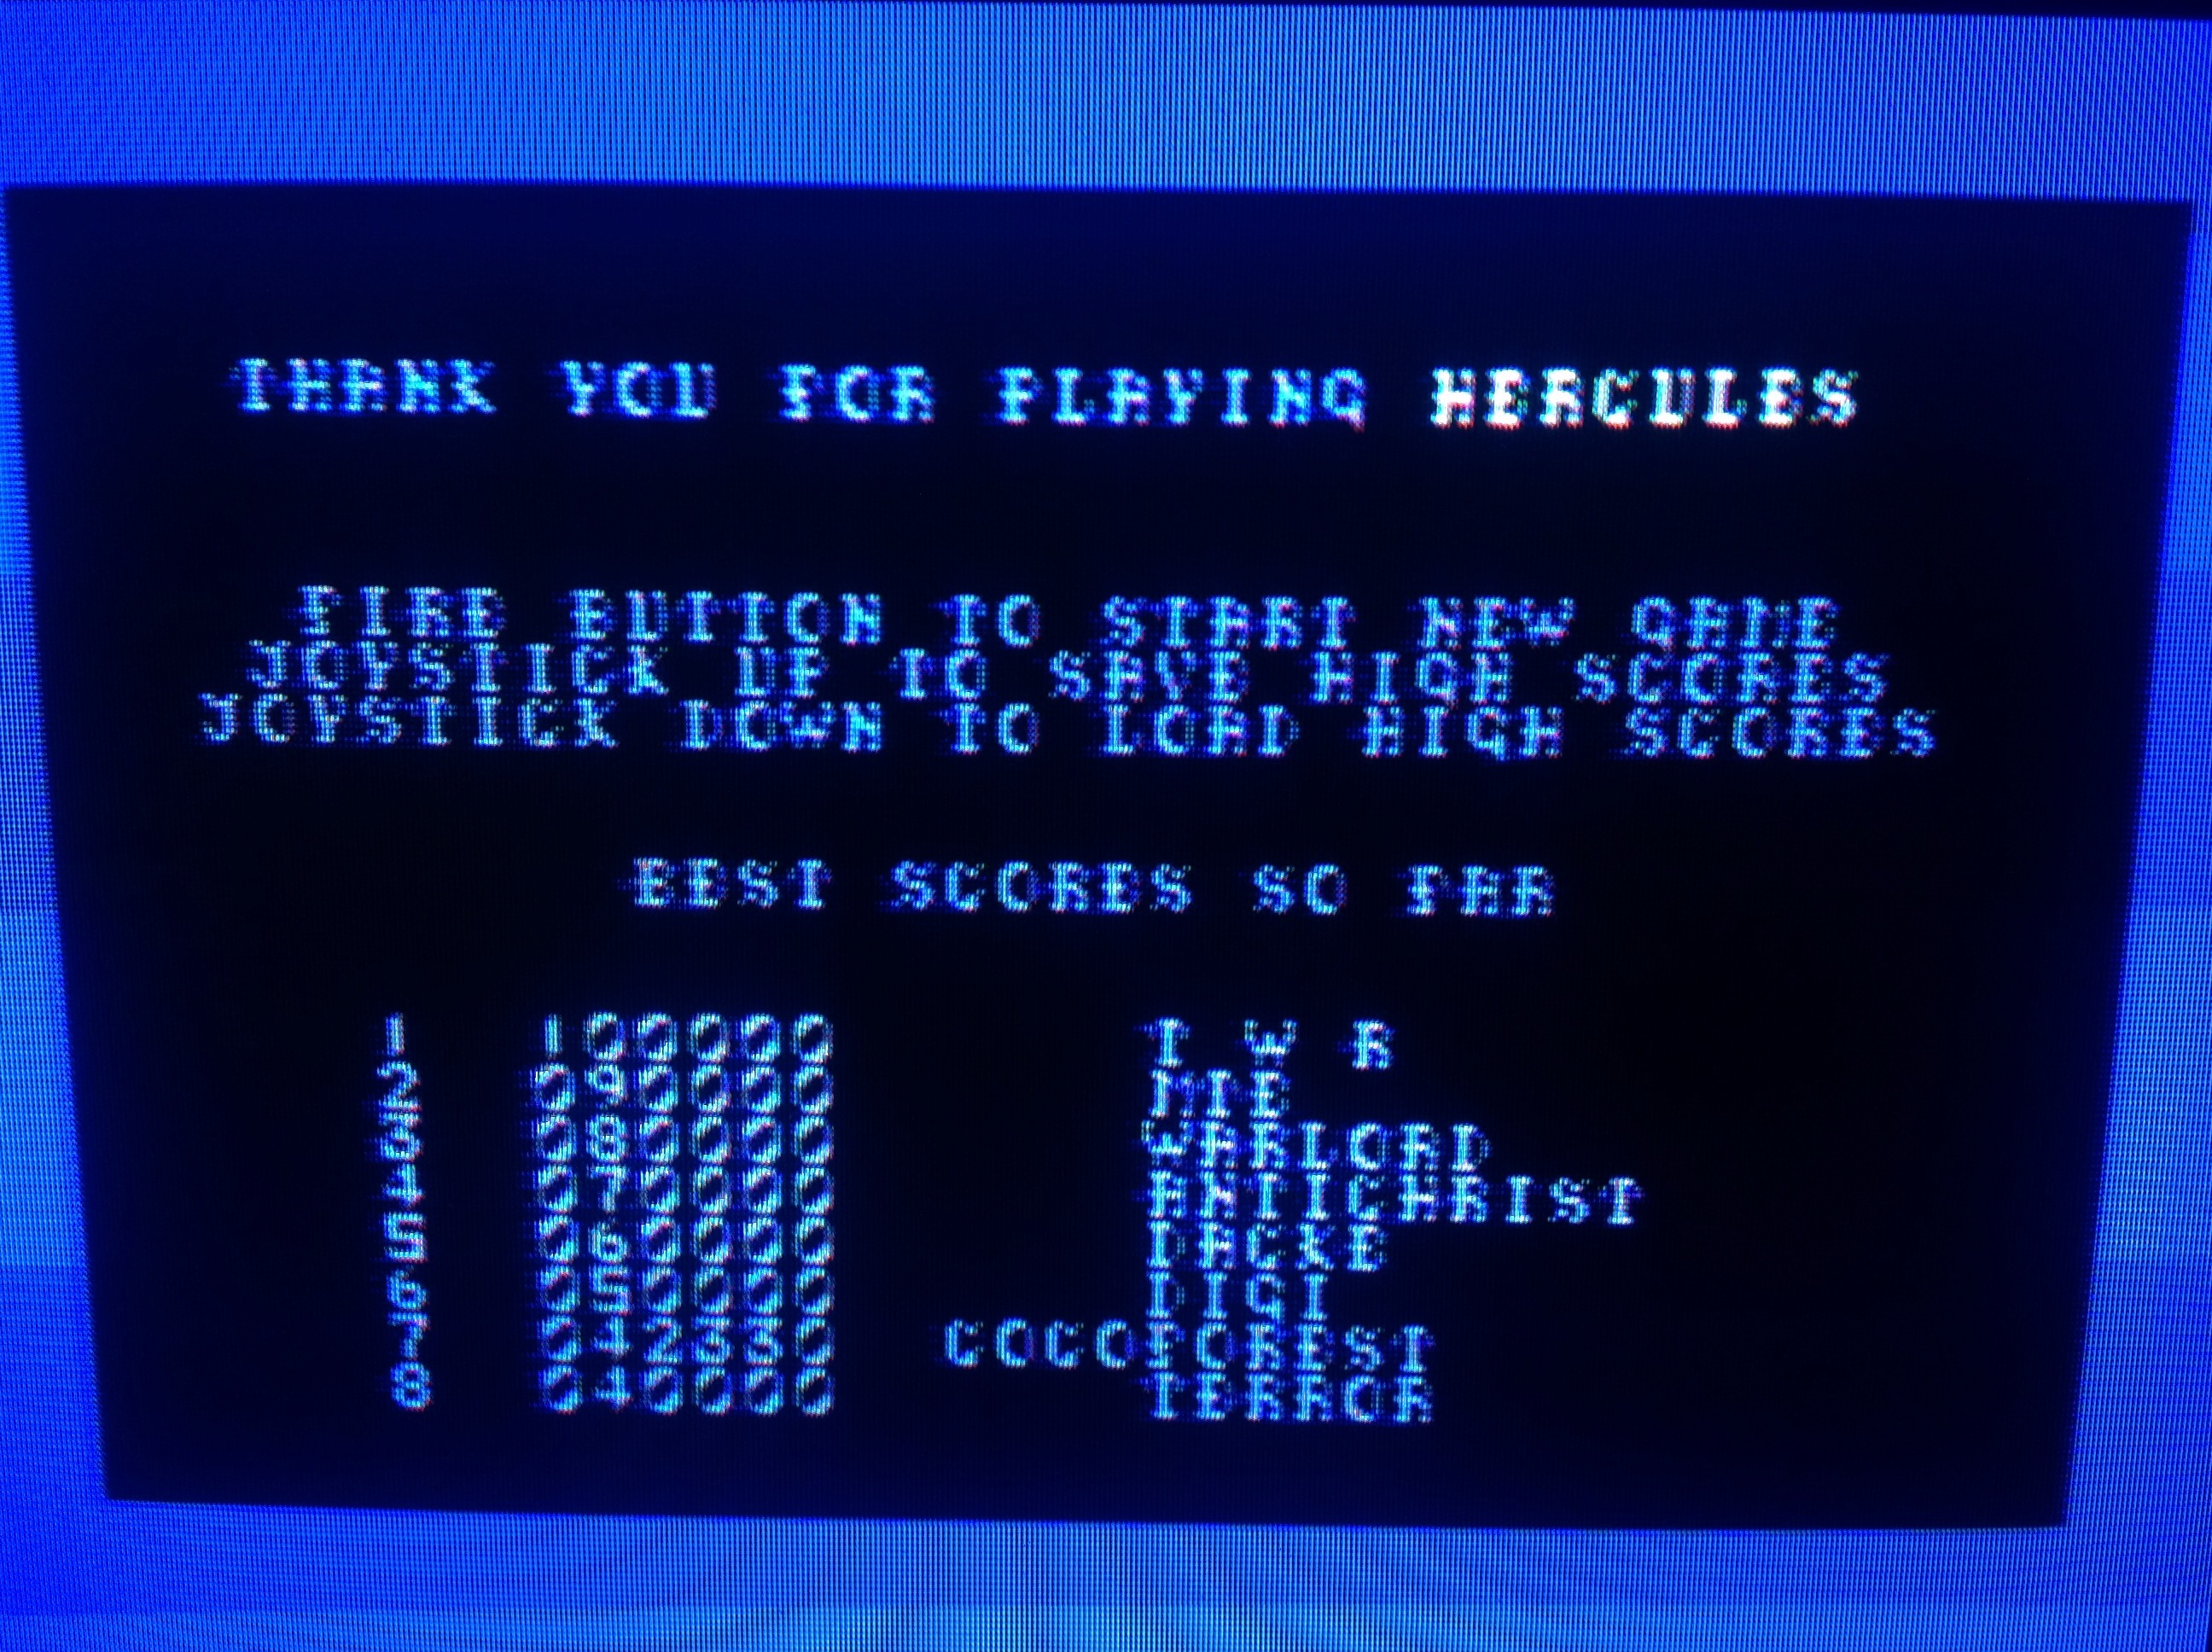 CoCoForest: Hercules [1984 Interdisc] (Commodore 64) 42,330 points on 2015-03-28 15:19:58